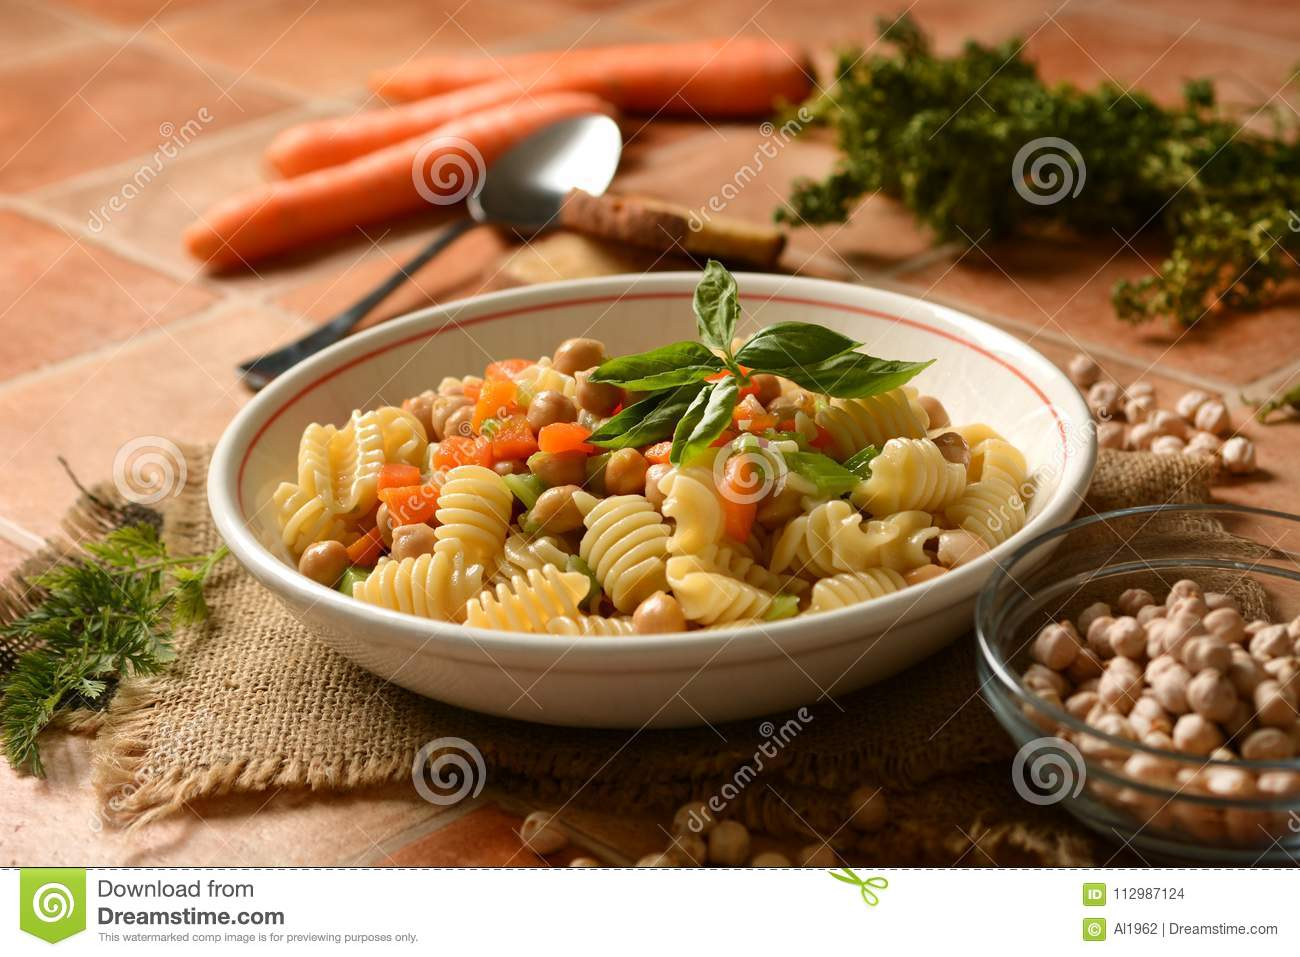 Pasta with chickpeas, carrots and celery